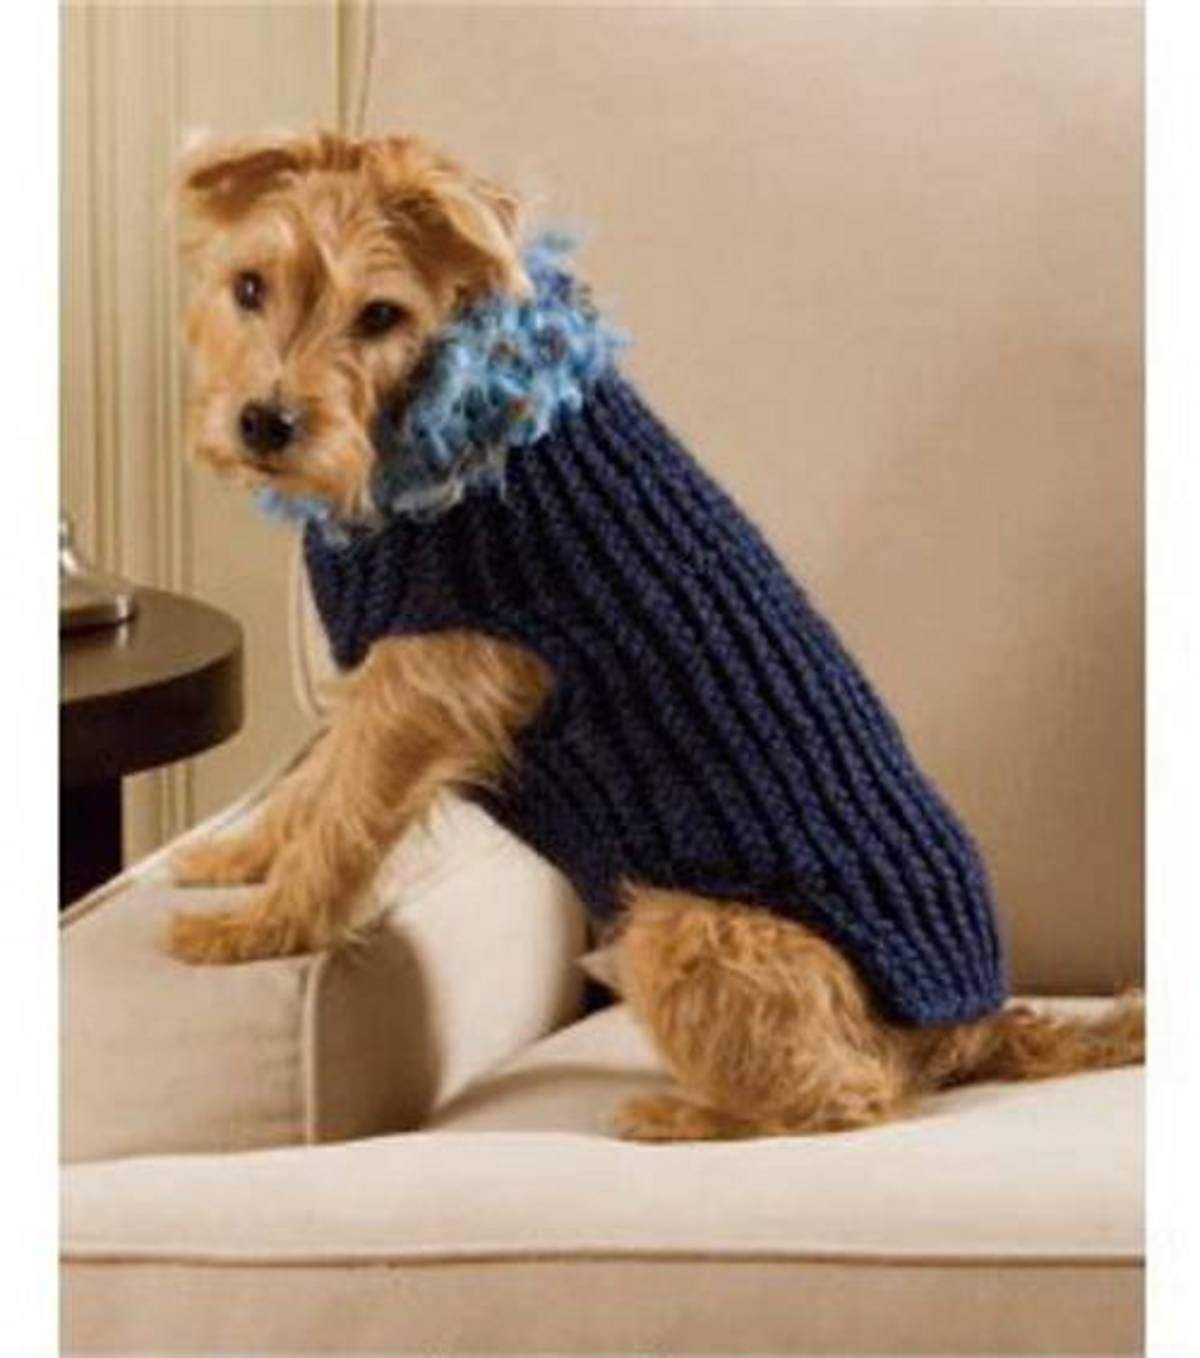 Easy to loom dog sweater loom patterns pinterest loom easy to loom dog sweater loom knitting patternsknitting bankloansurffo Choice Image